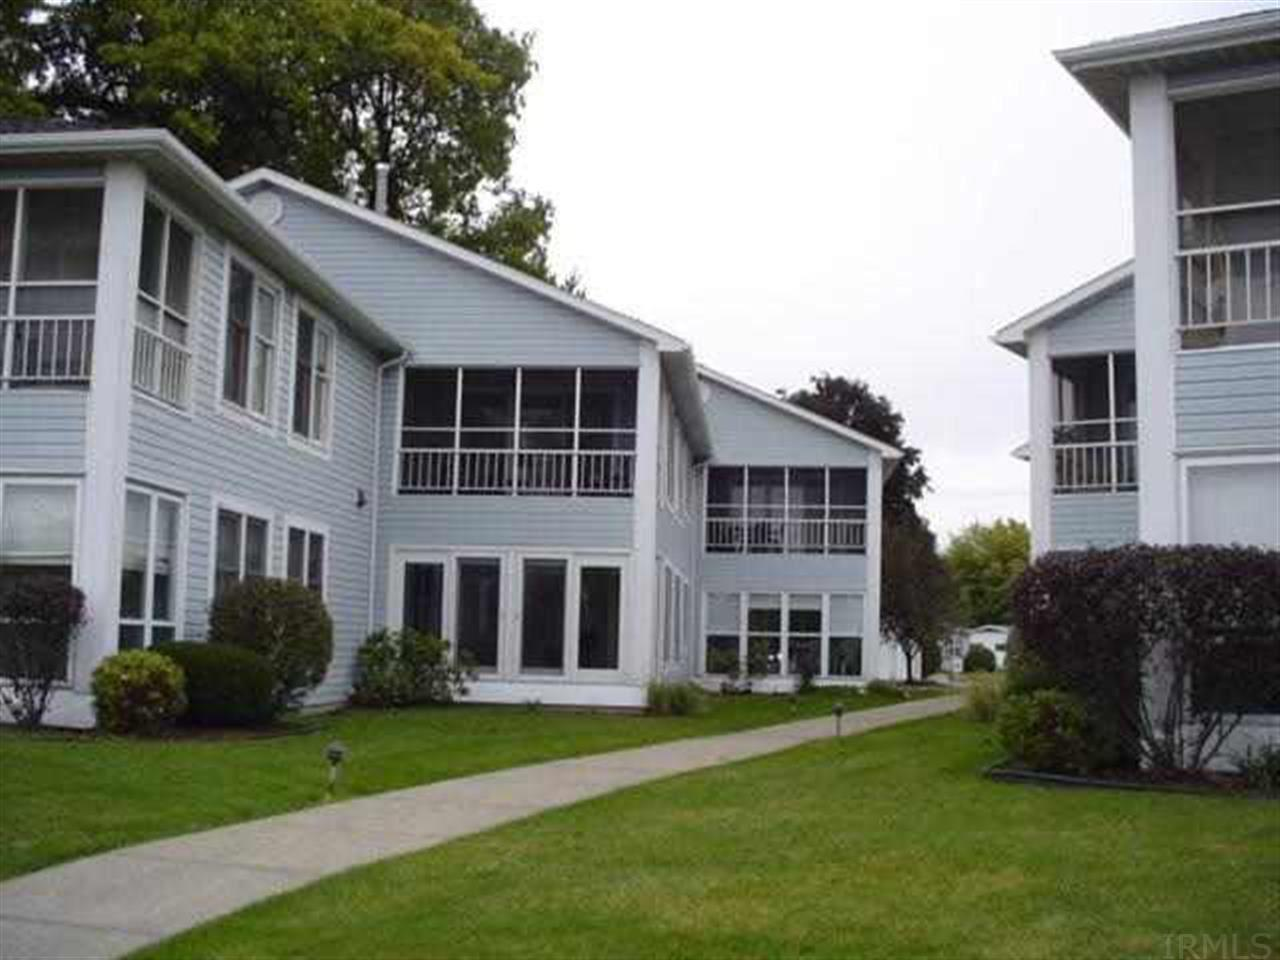 510 S Harkless Dr  #10 Syracuse, IN 46567